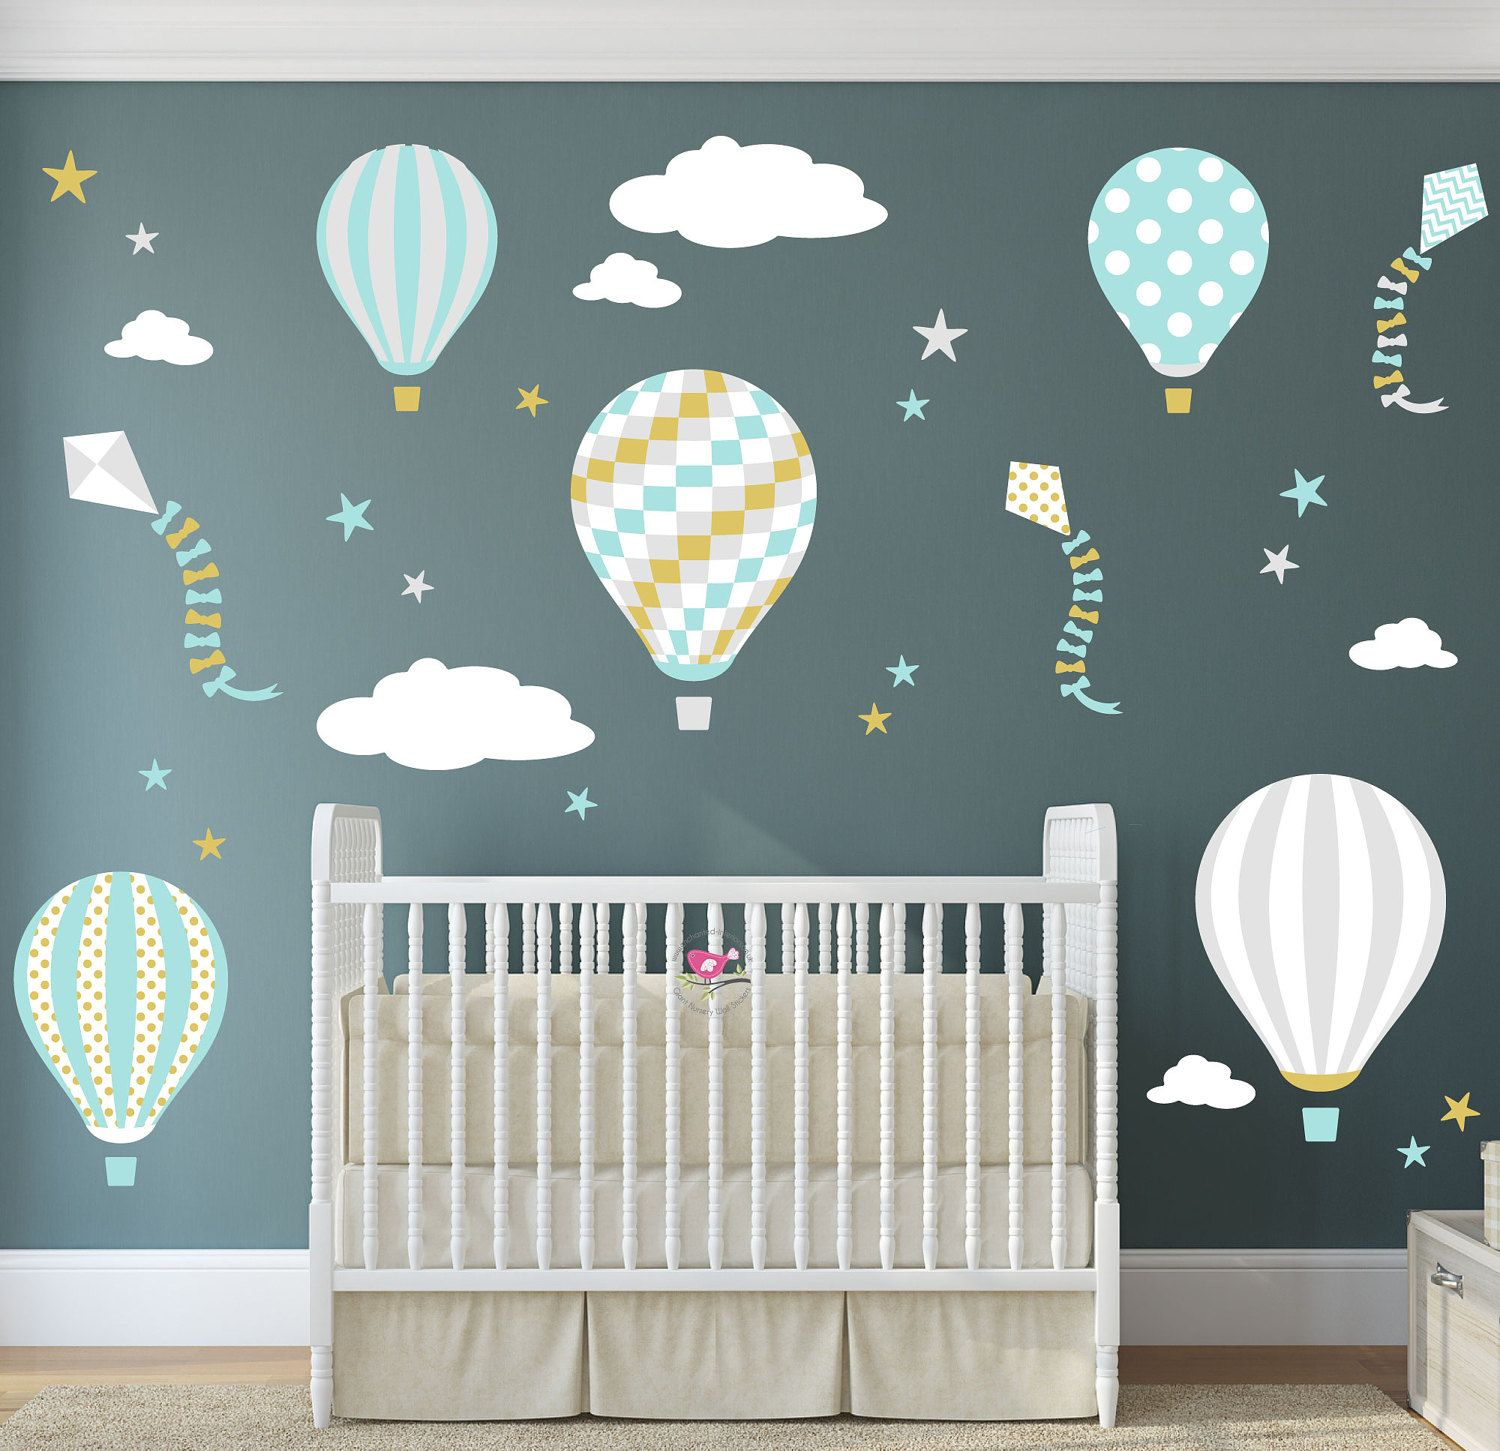 Kites And Stars Wall Stickers, Gender Neutral, Nursery Room Baby